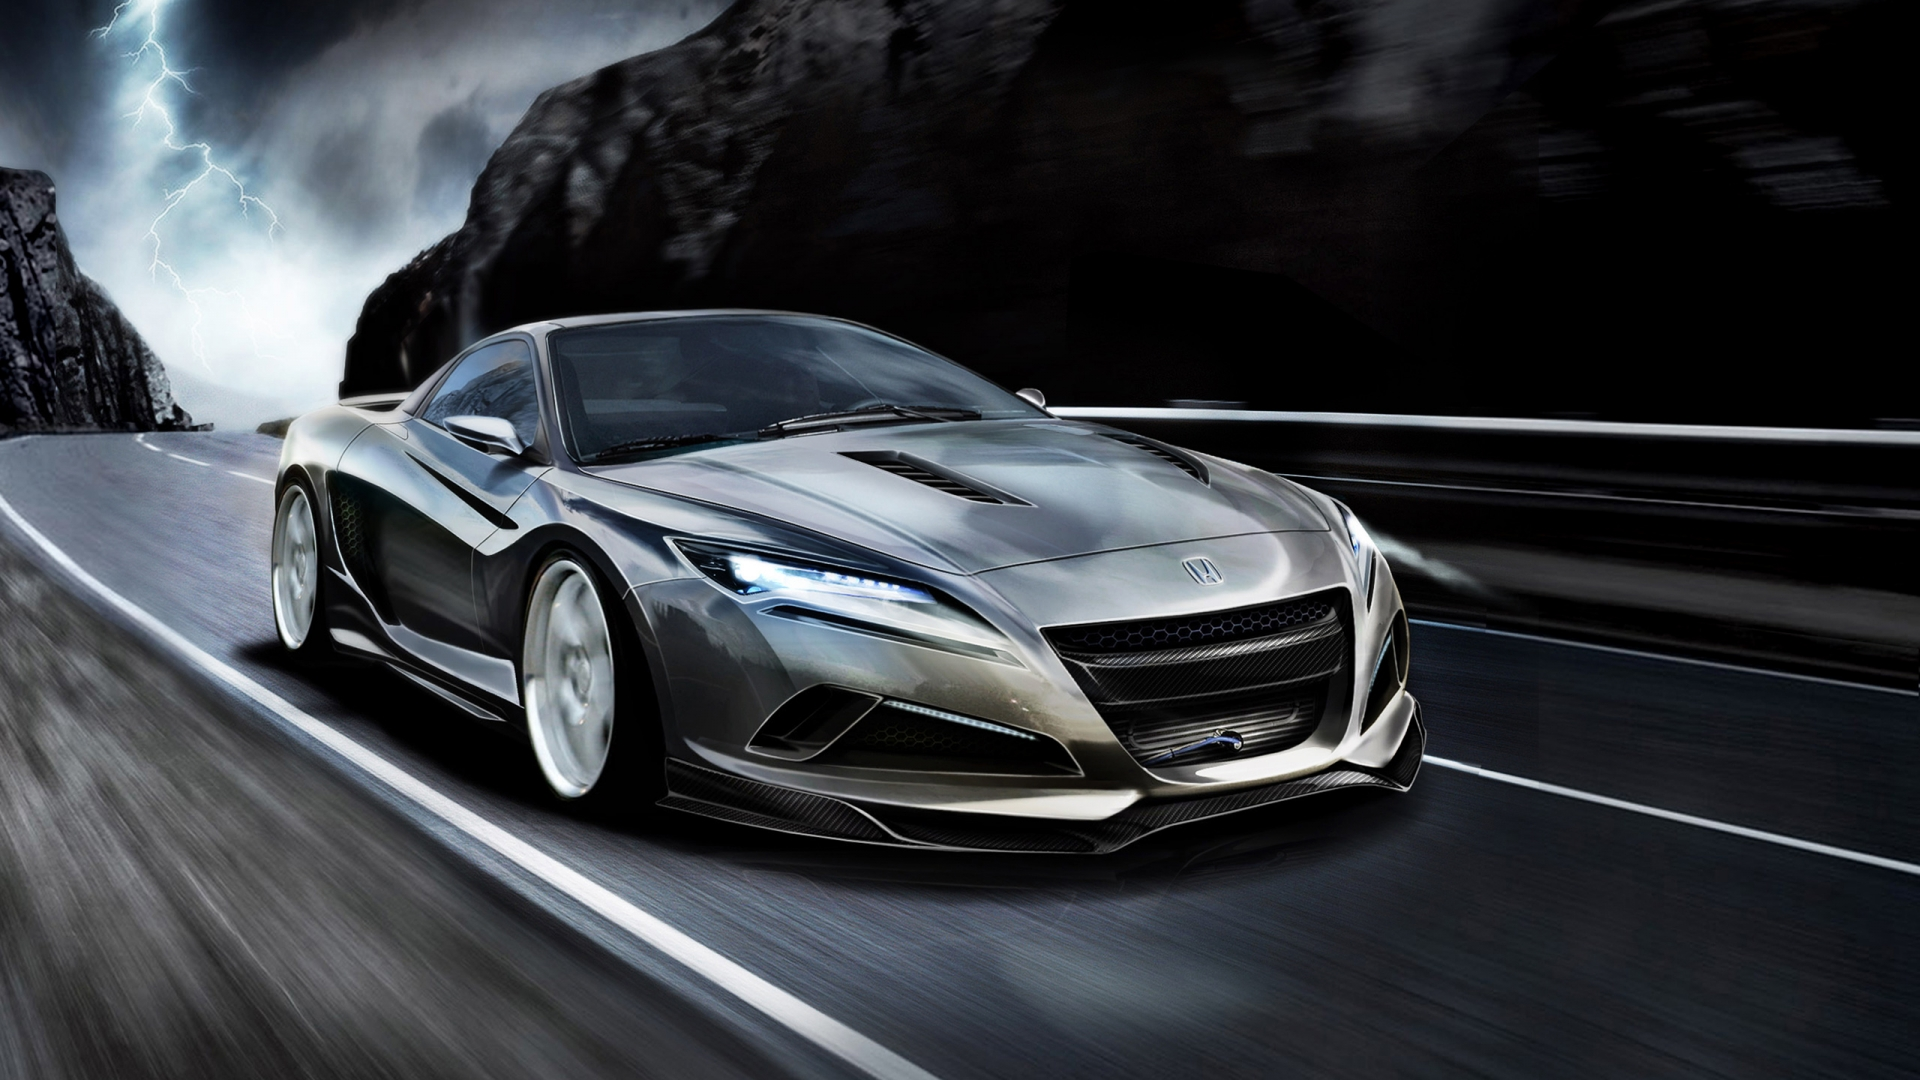 Honda Luxury Designed for Speed